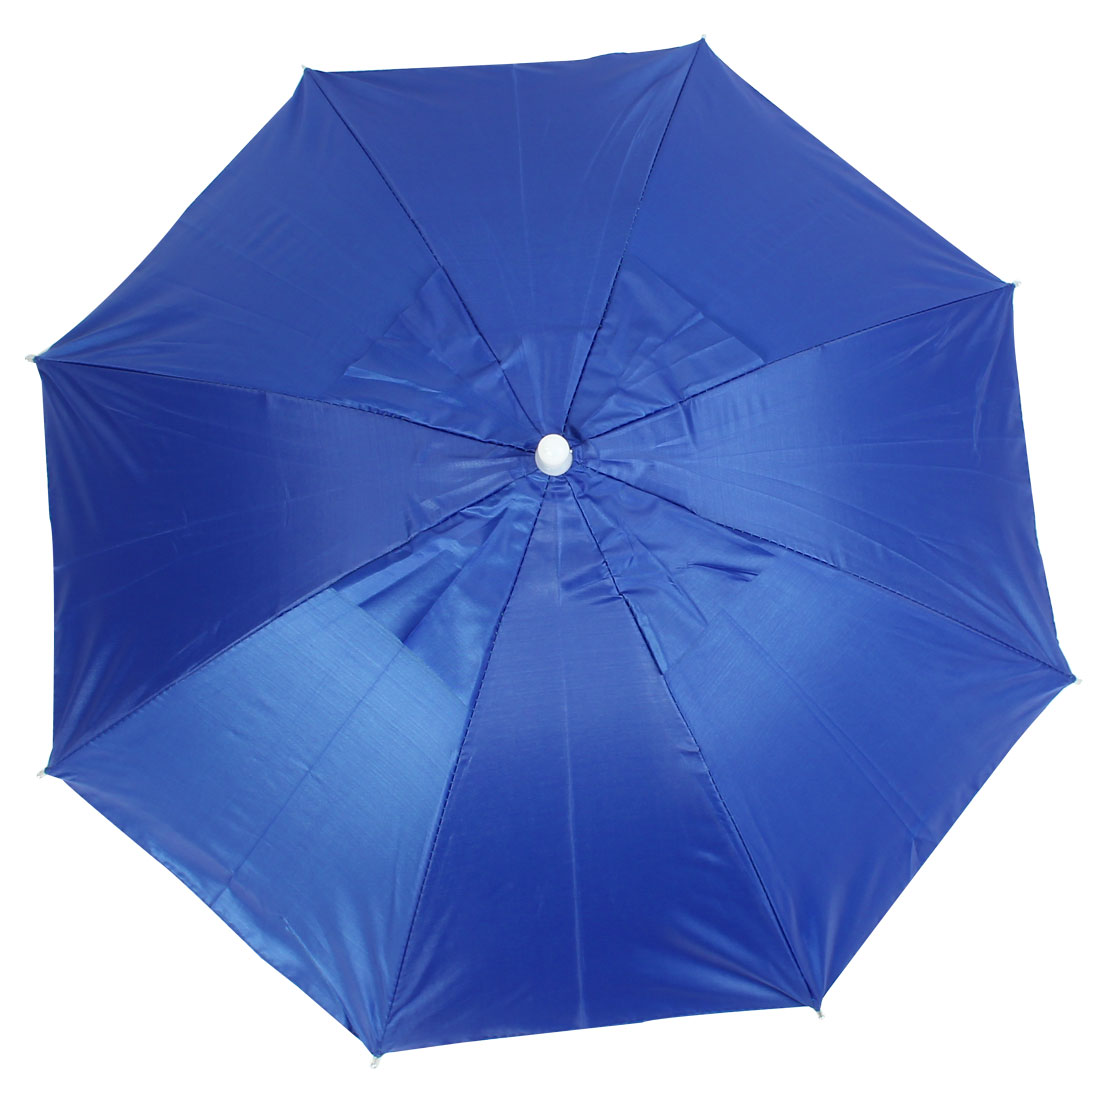 Outdoor Fishing Headwear Polyester Canopy Umbrella Hat Cap Blue